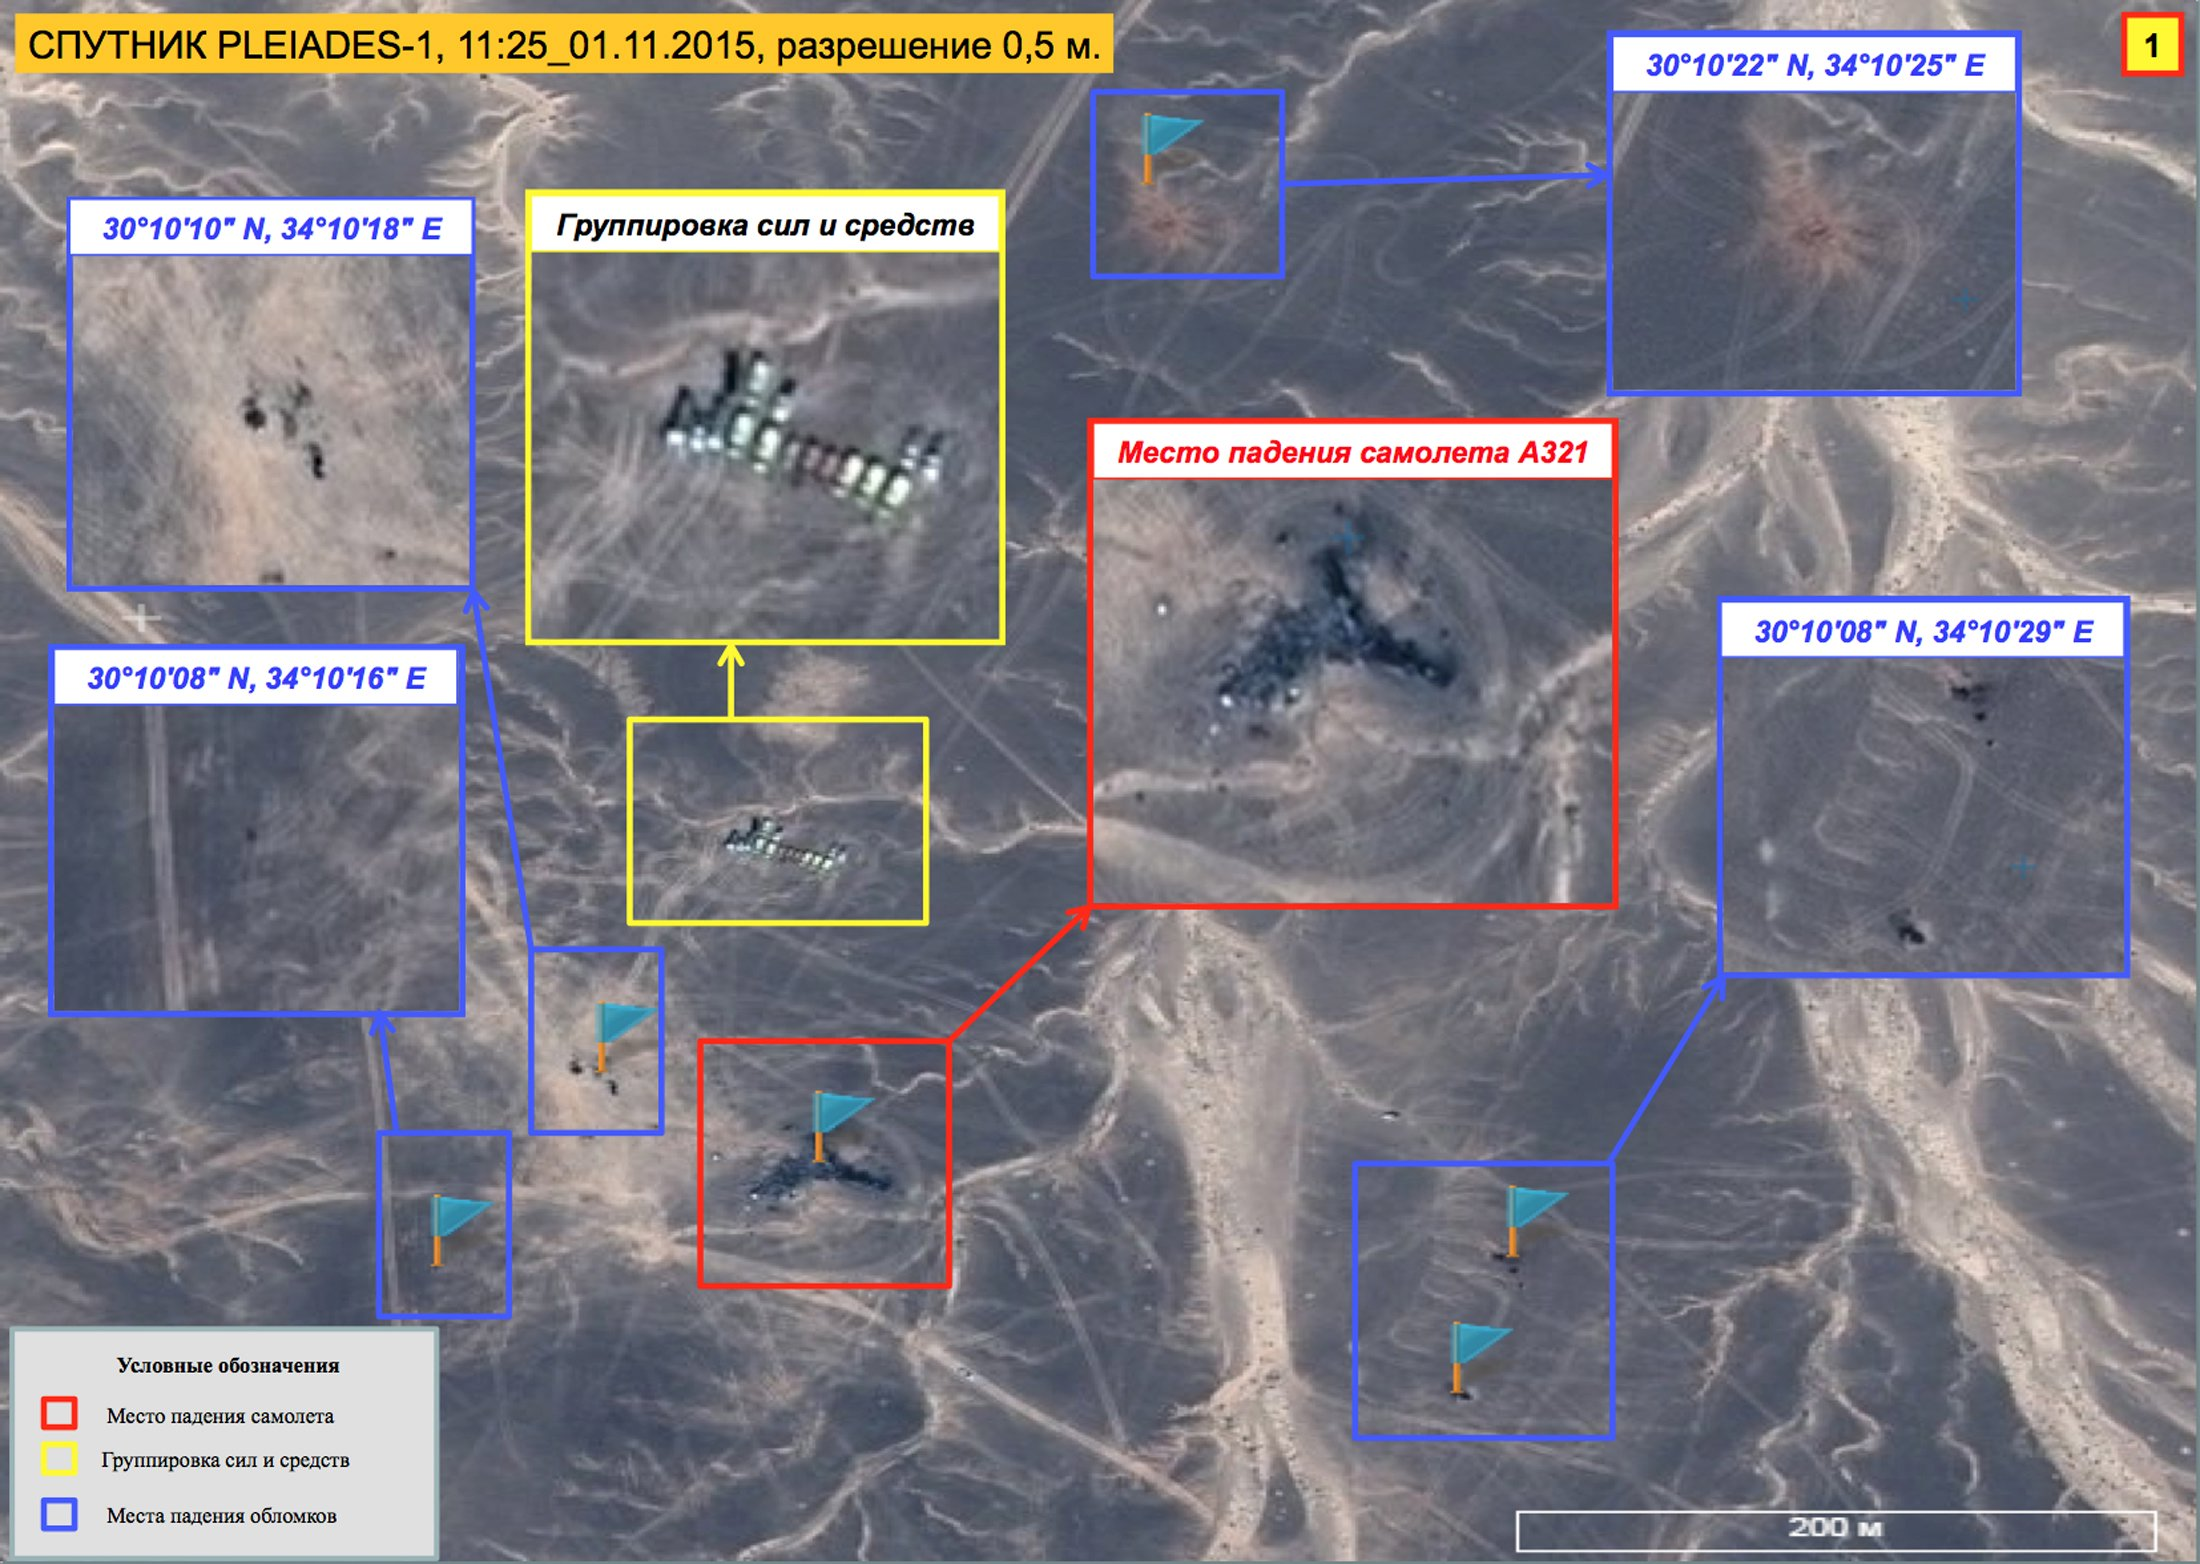 The Russian airplane crash site on the Sinai Peninsula is pictured in this handout photo satellite image provided by Russian Emergencies Ministry on Sunday. | REUTERS/PRESS SERVICE OF RUSSIAN EMERGENCIES MINISTRY / HANDOUT VIA REUTERS